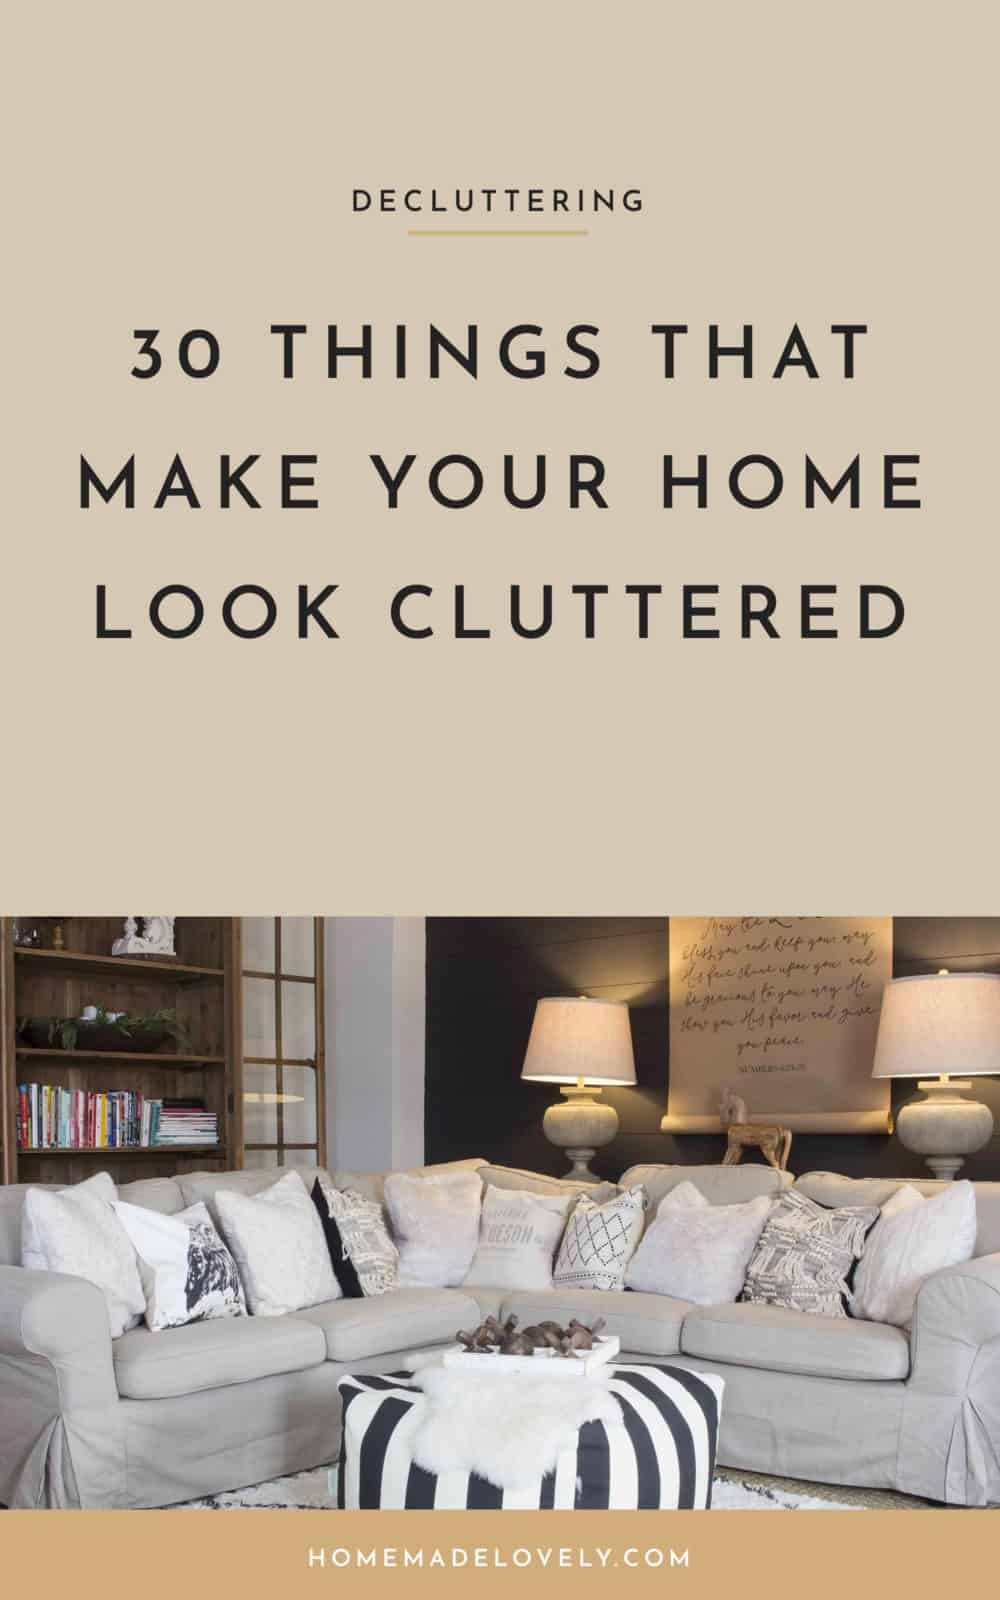 30 things that make your home look cluttered